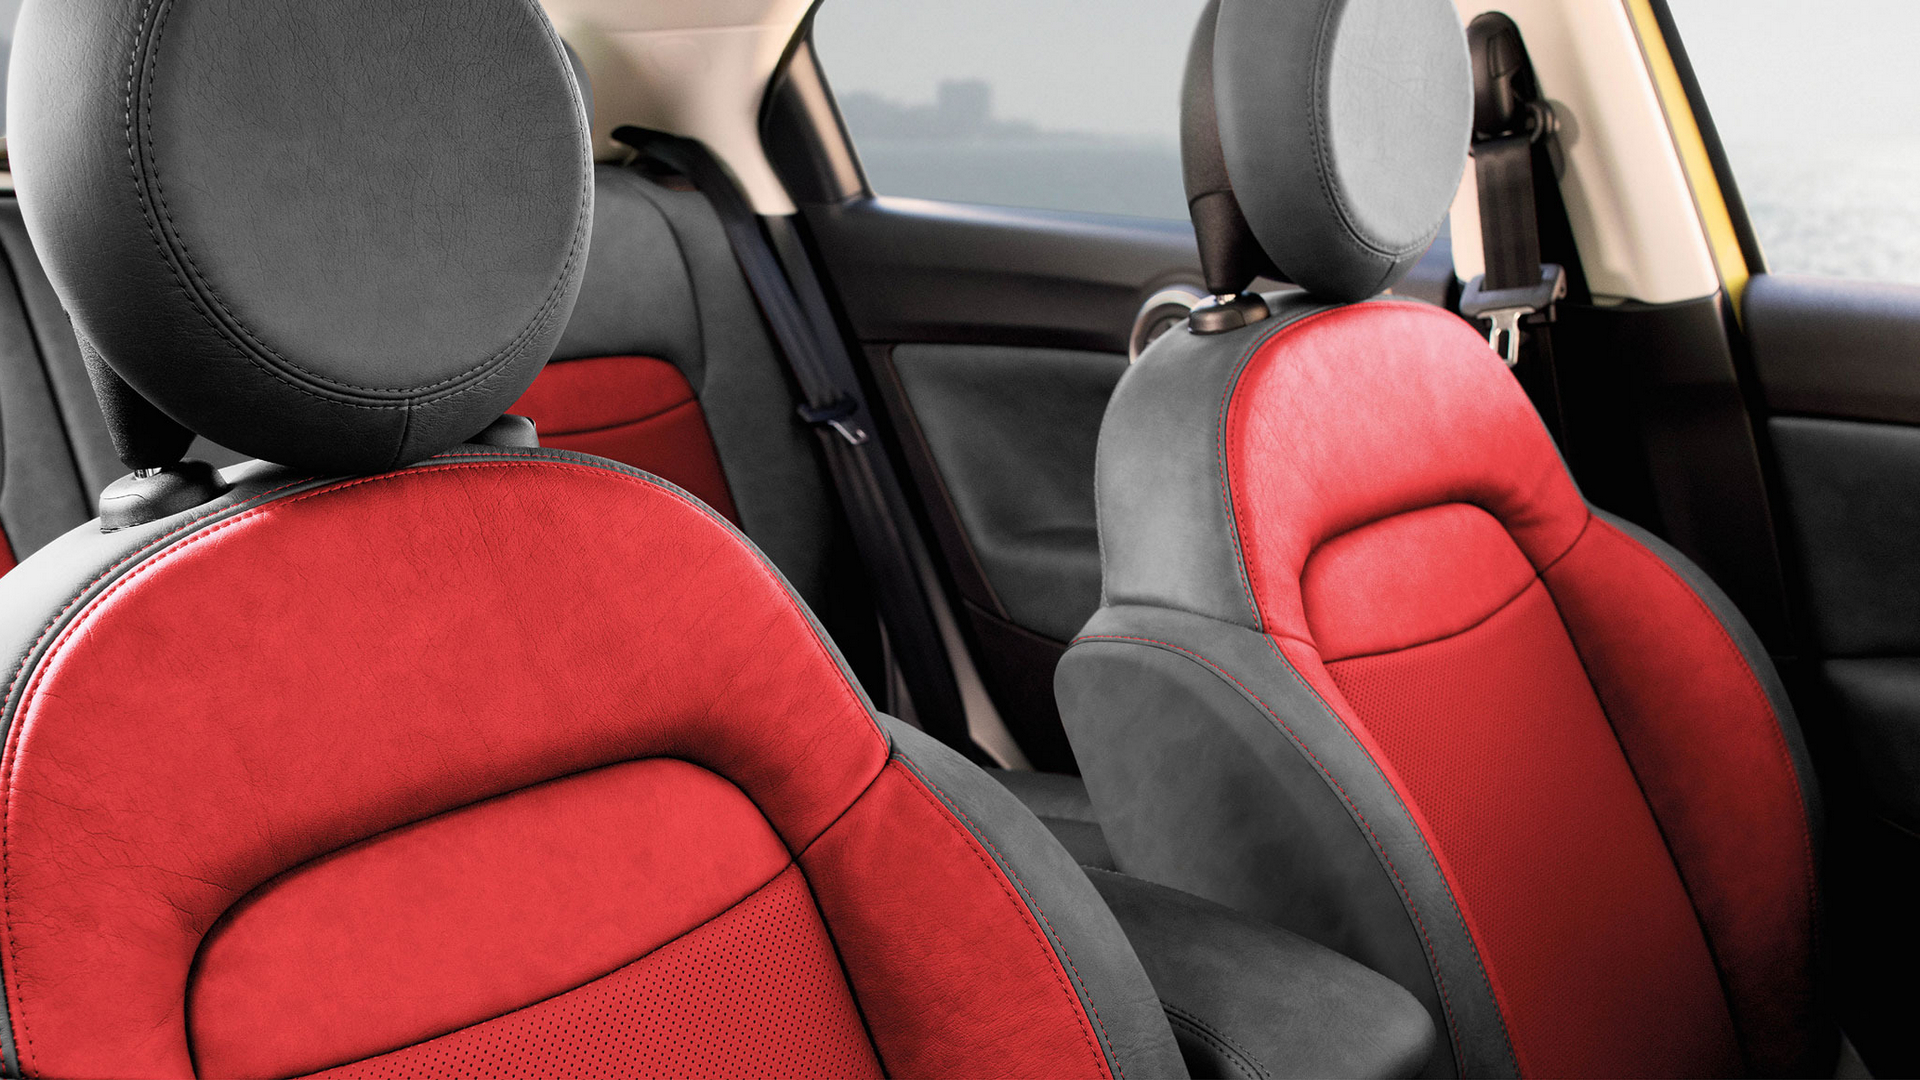 how many seats in a fiat 500